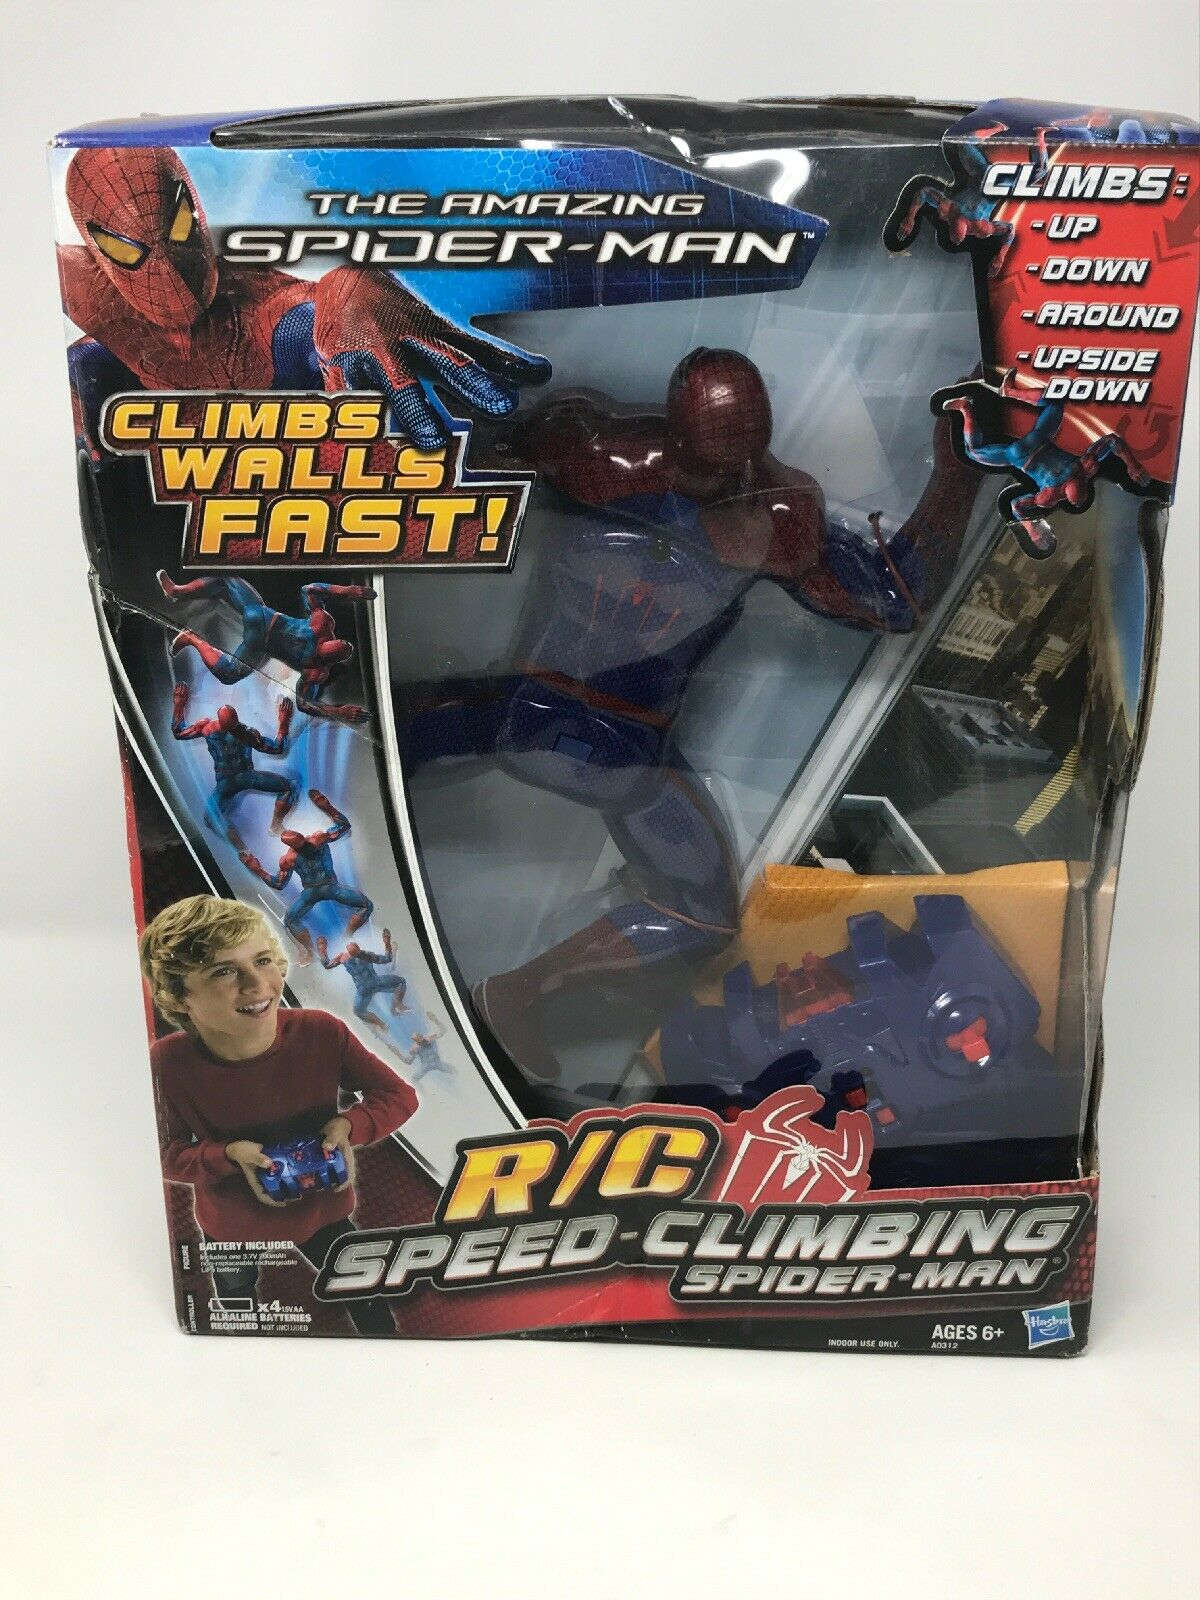 The Amazing Spider-Man R C Speed-Climbing Hasbro Marvel Brand New 2011 12